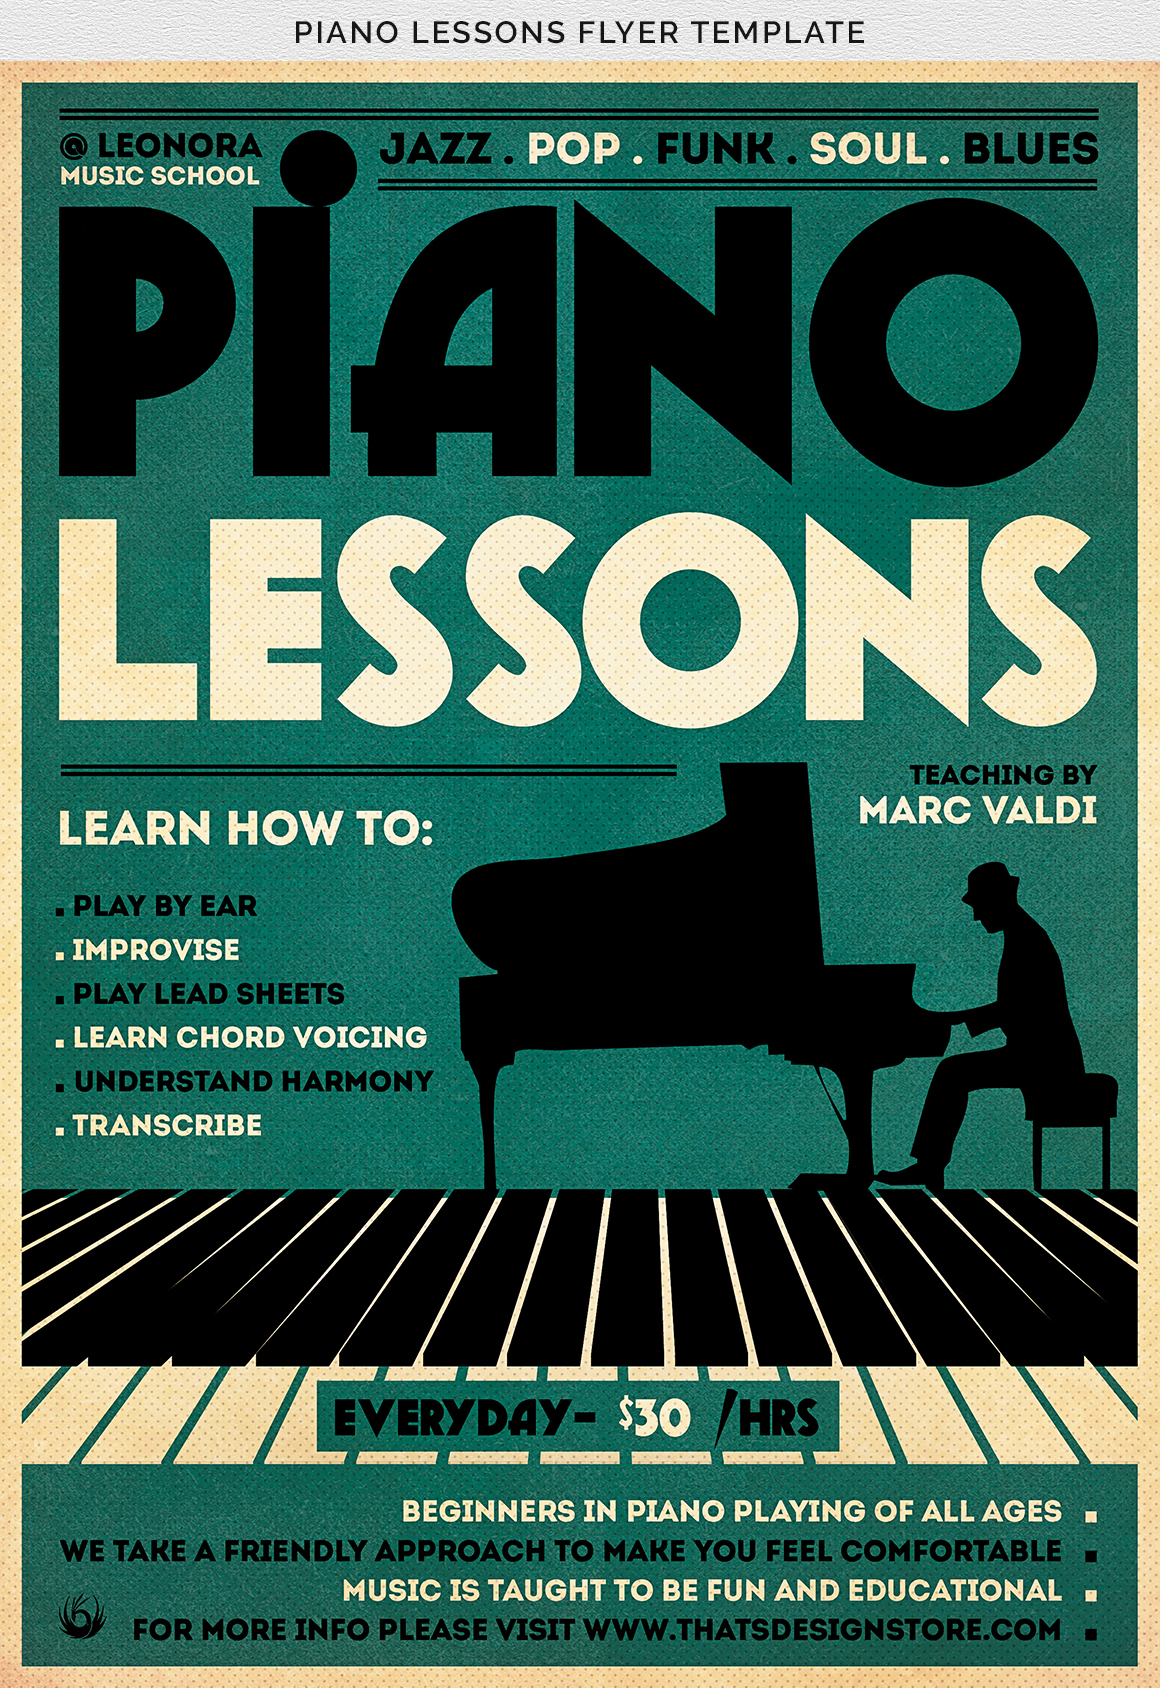 Piano Lessons Flyer Template example image 11